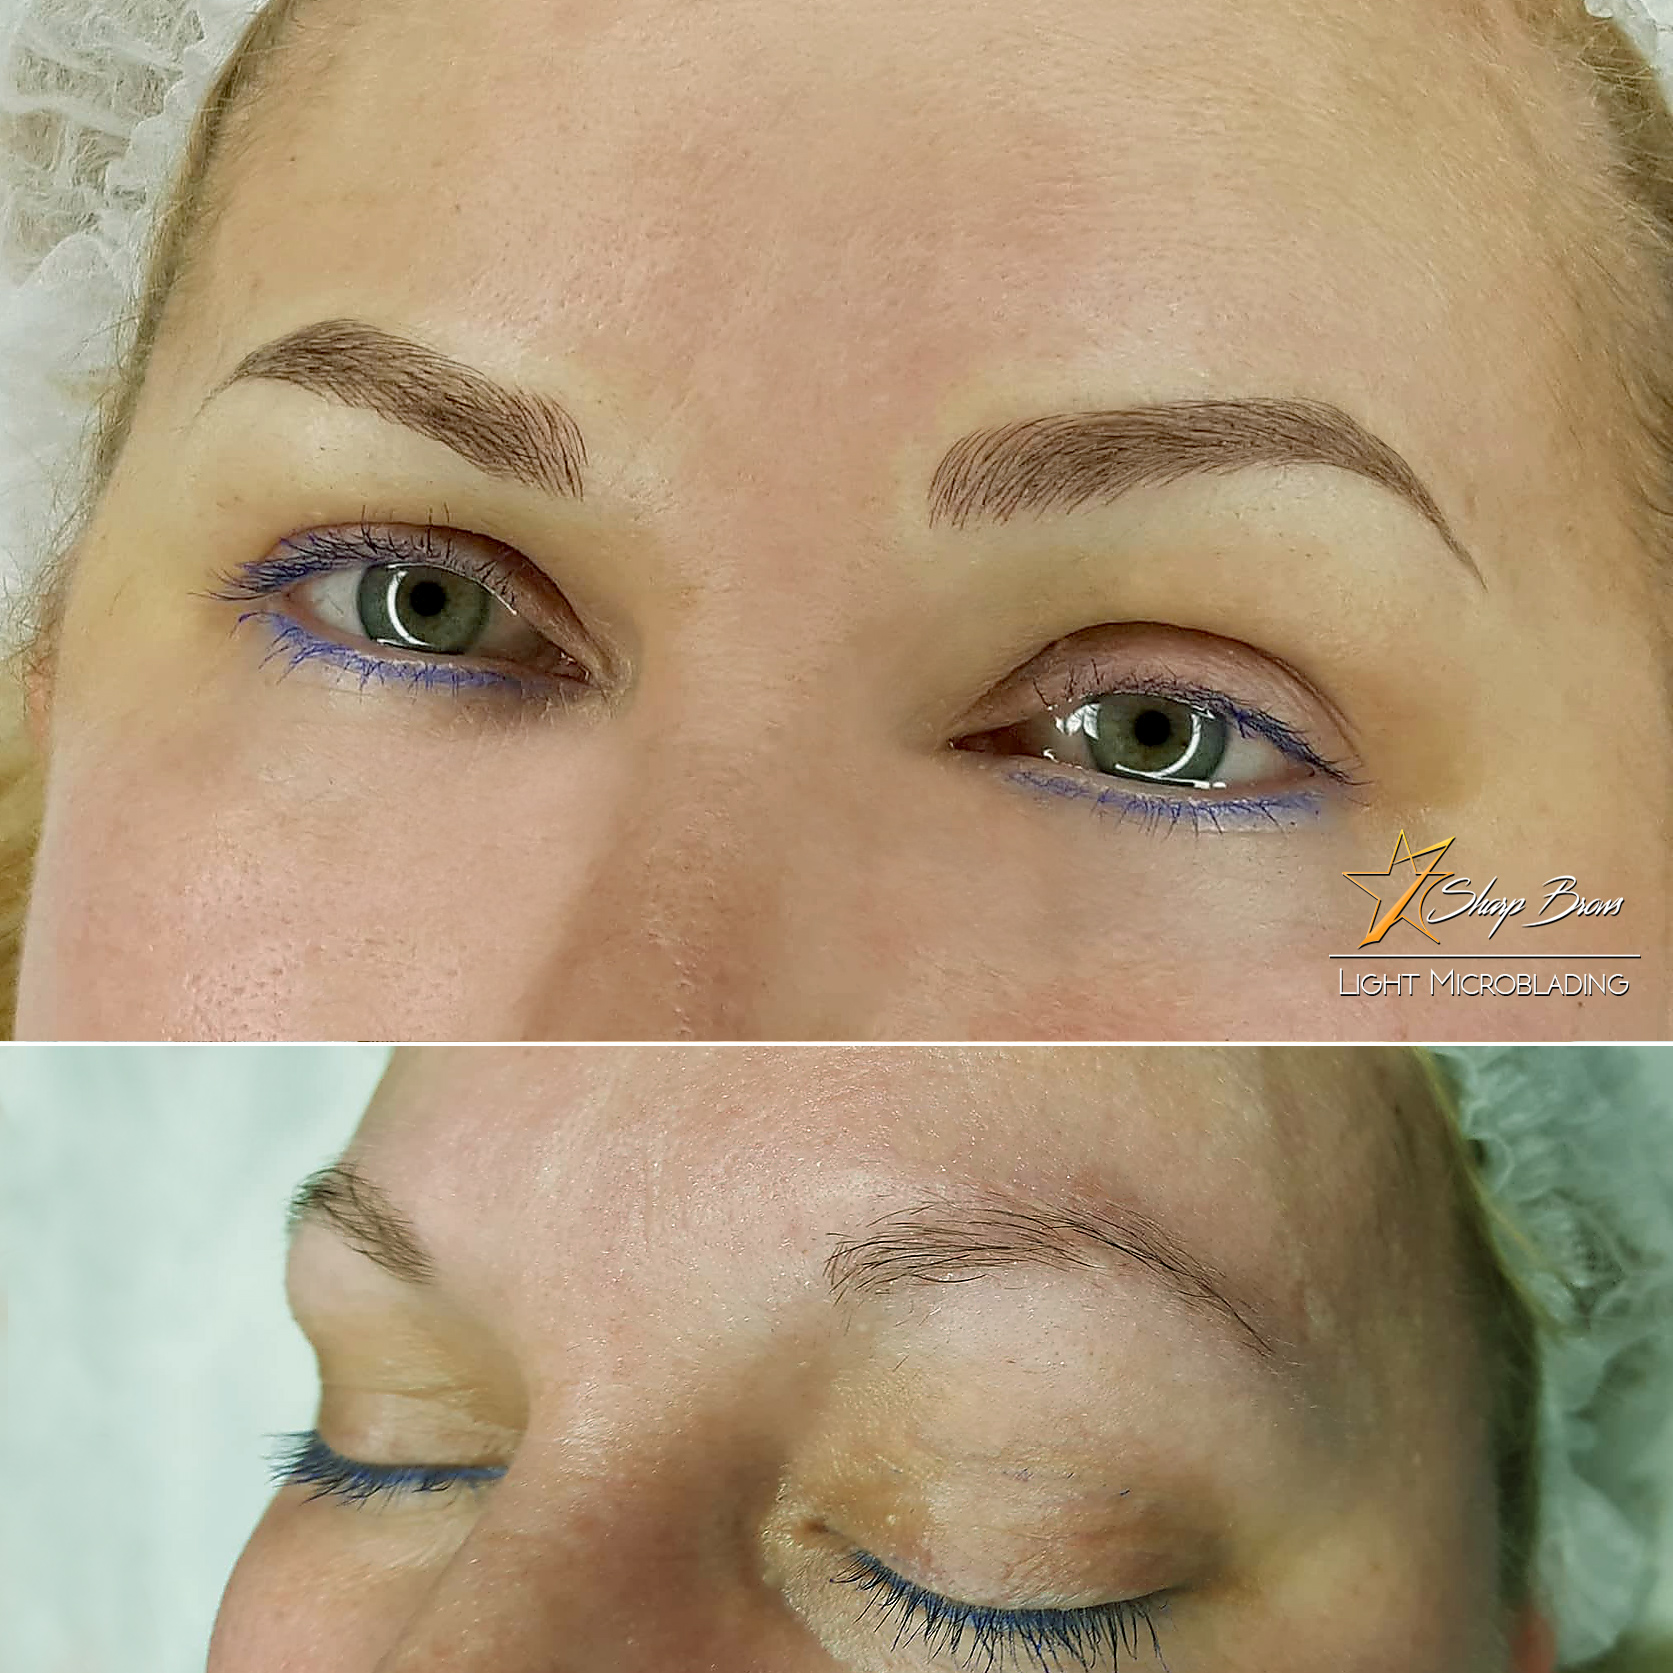 SharpBrows Light microblading. Here is a fine example of how correctly done microblading makes the client look considerably younger.